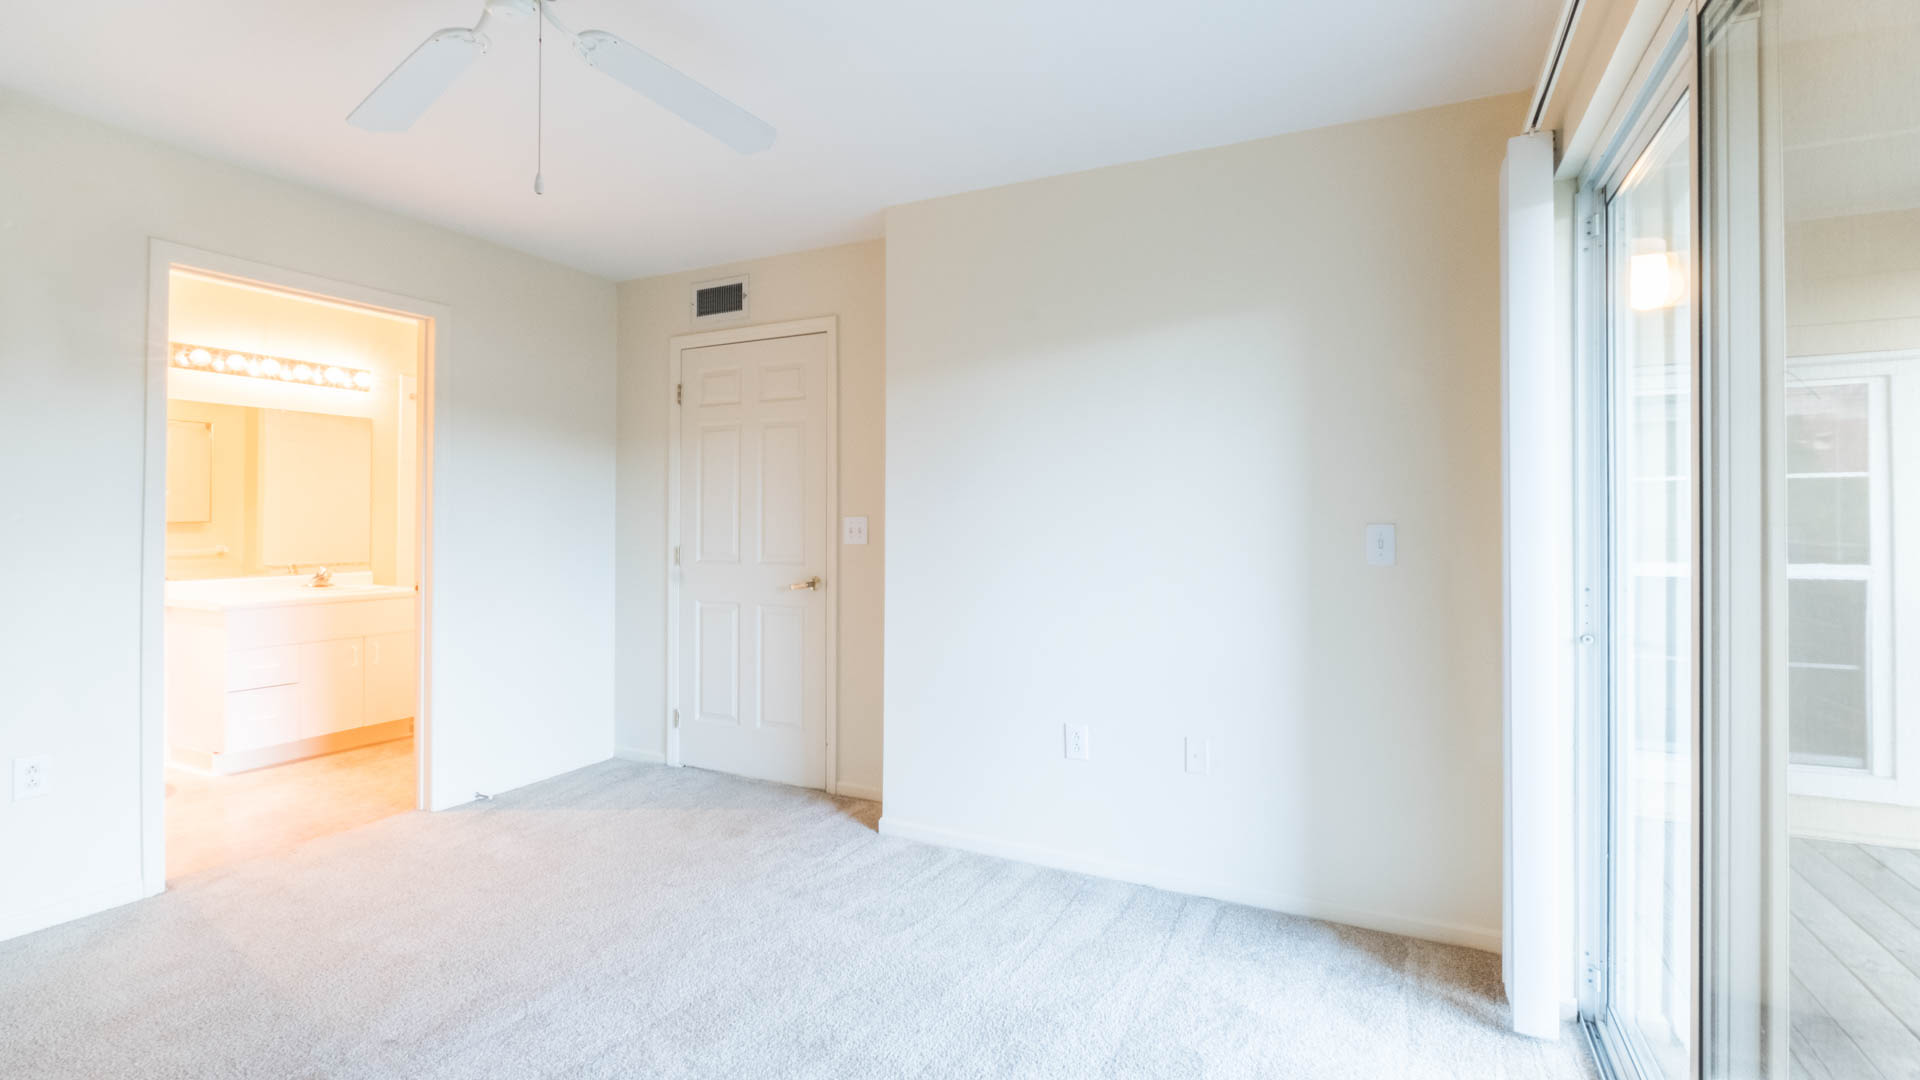 1 Bedroom Apartments Stamford Ct - Search your favorite Image